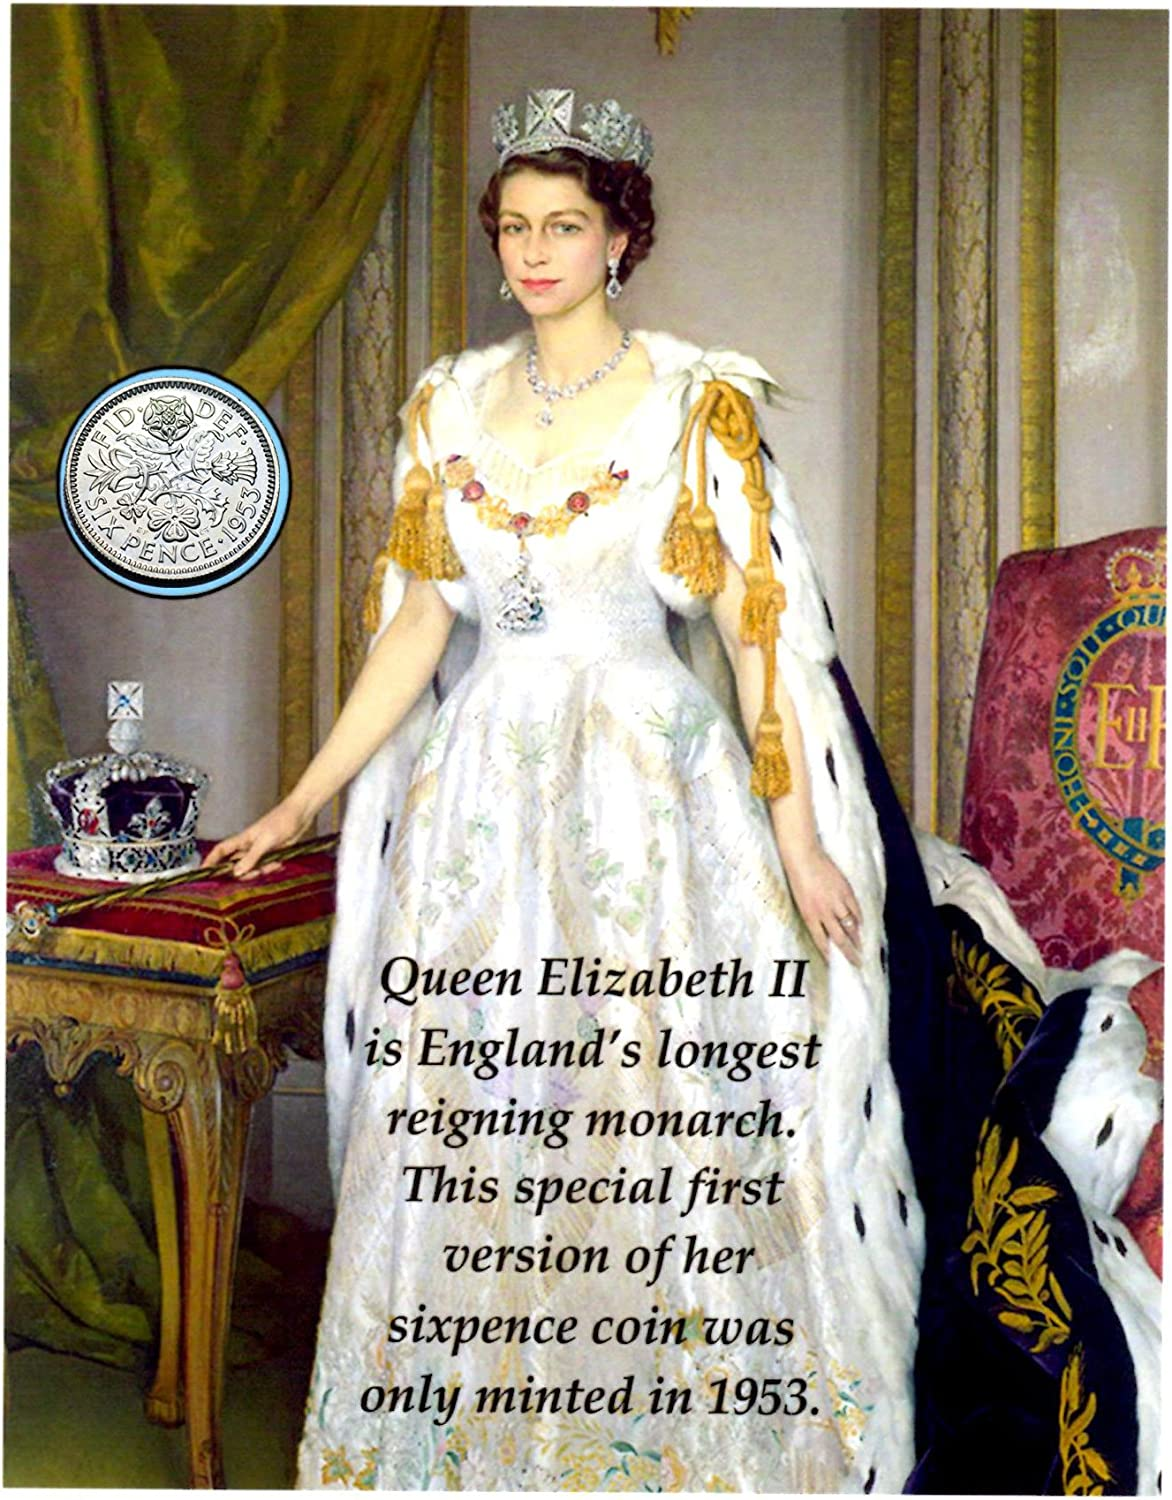 Queen Elizabeth II First Sixpence Coin and Descriptive Card